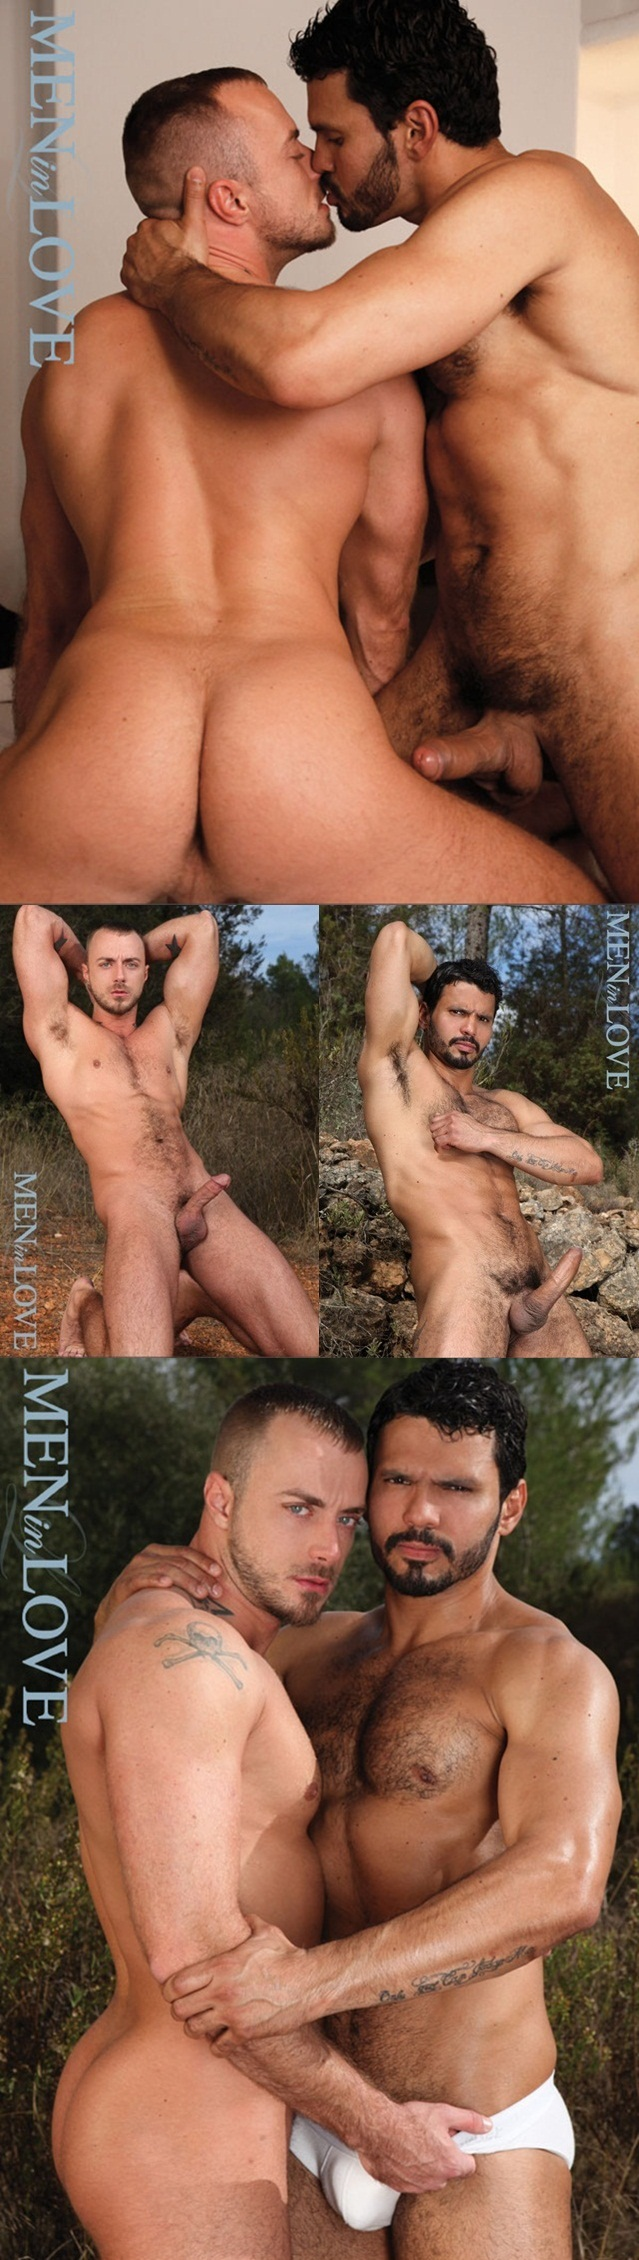 Young muscled power bottom Jessie Colter and powerful man with thick uncut cock Jean Franko 5 download full movie torrents and gay porn photo gallery 5 Lucas Entertainments: Jessie Colter and Jean Franko fucking gorgeous